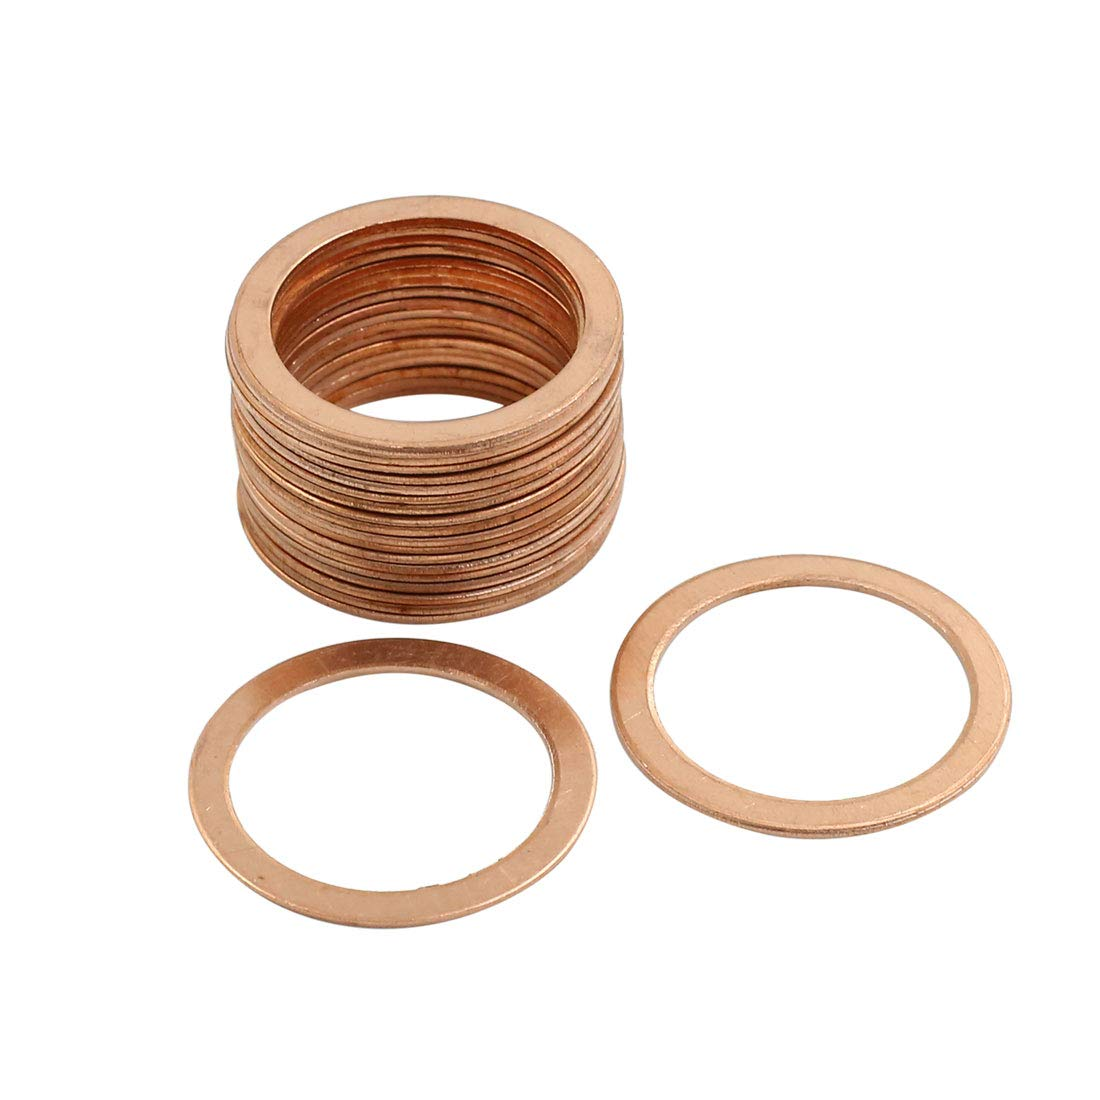 X AUTOHAUX 20 Pcs 25mm Inner Dia Copper Washers Flat Sealing Gasket Rings for Car